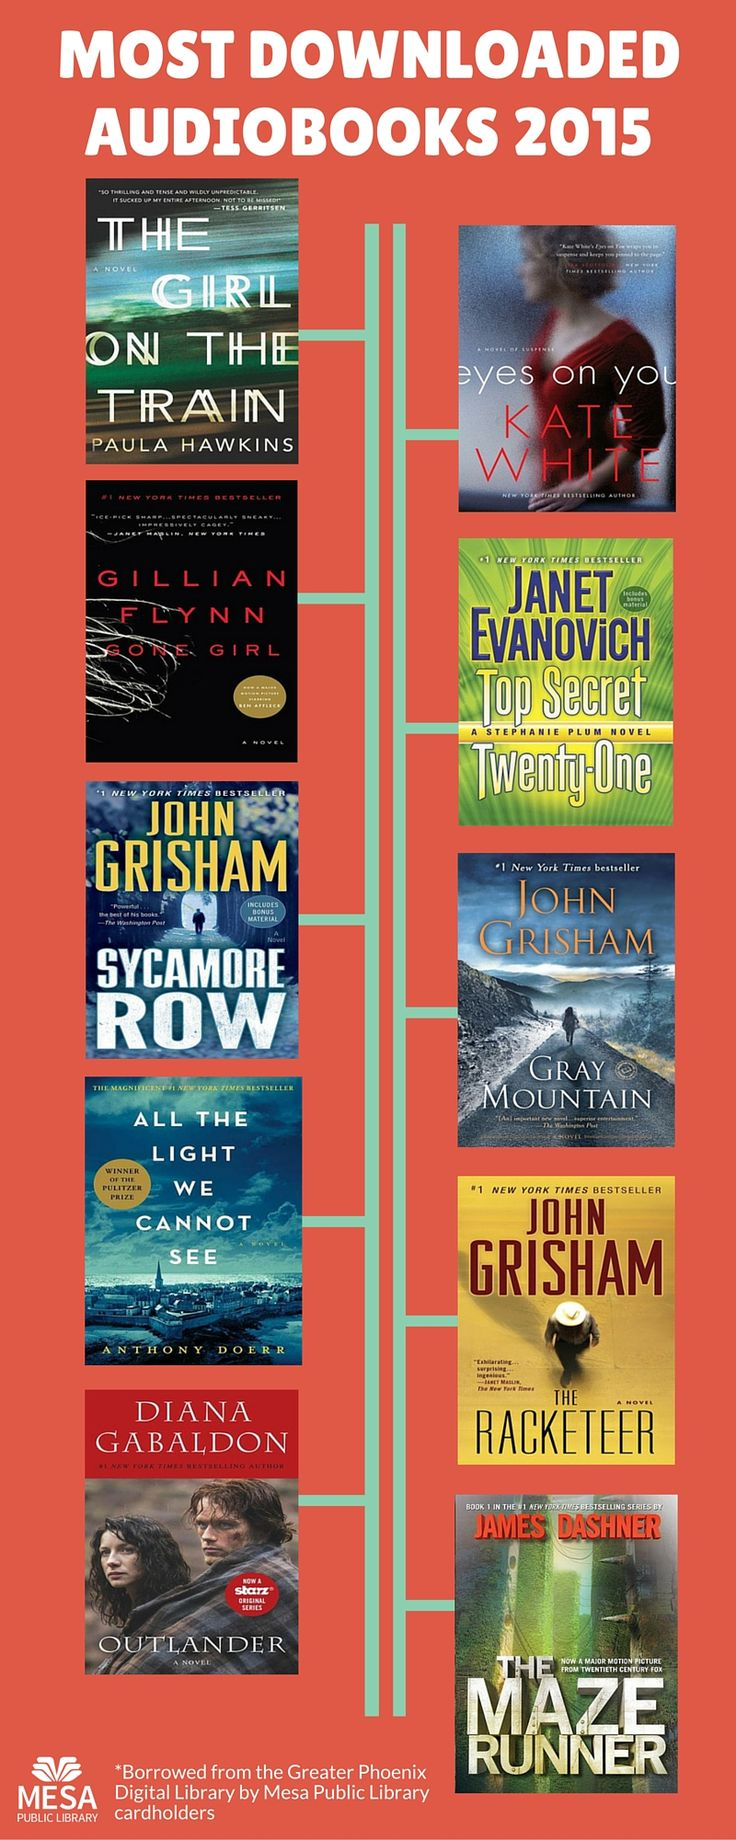 Most Downloaded Audiobooks Of 2015 By Mesa Public Library Users  #bestbooksof2015 #mesalibrary